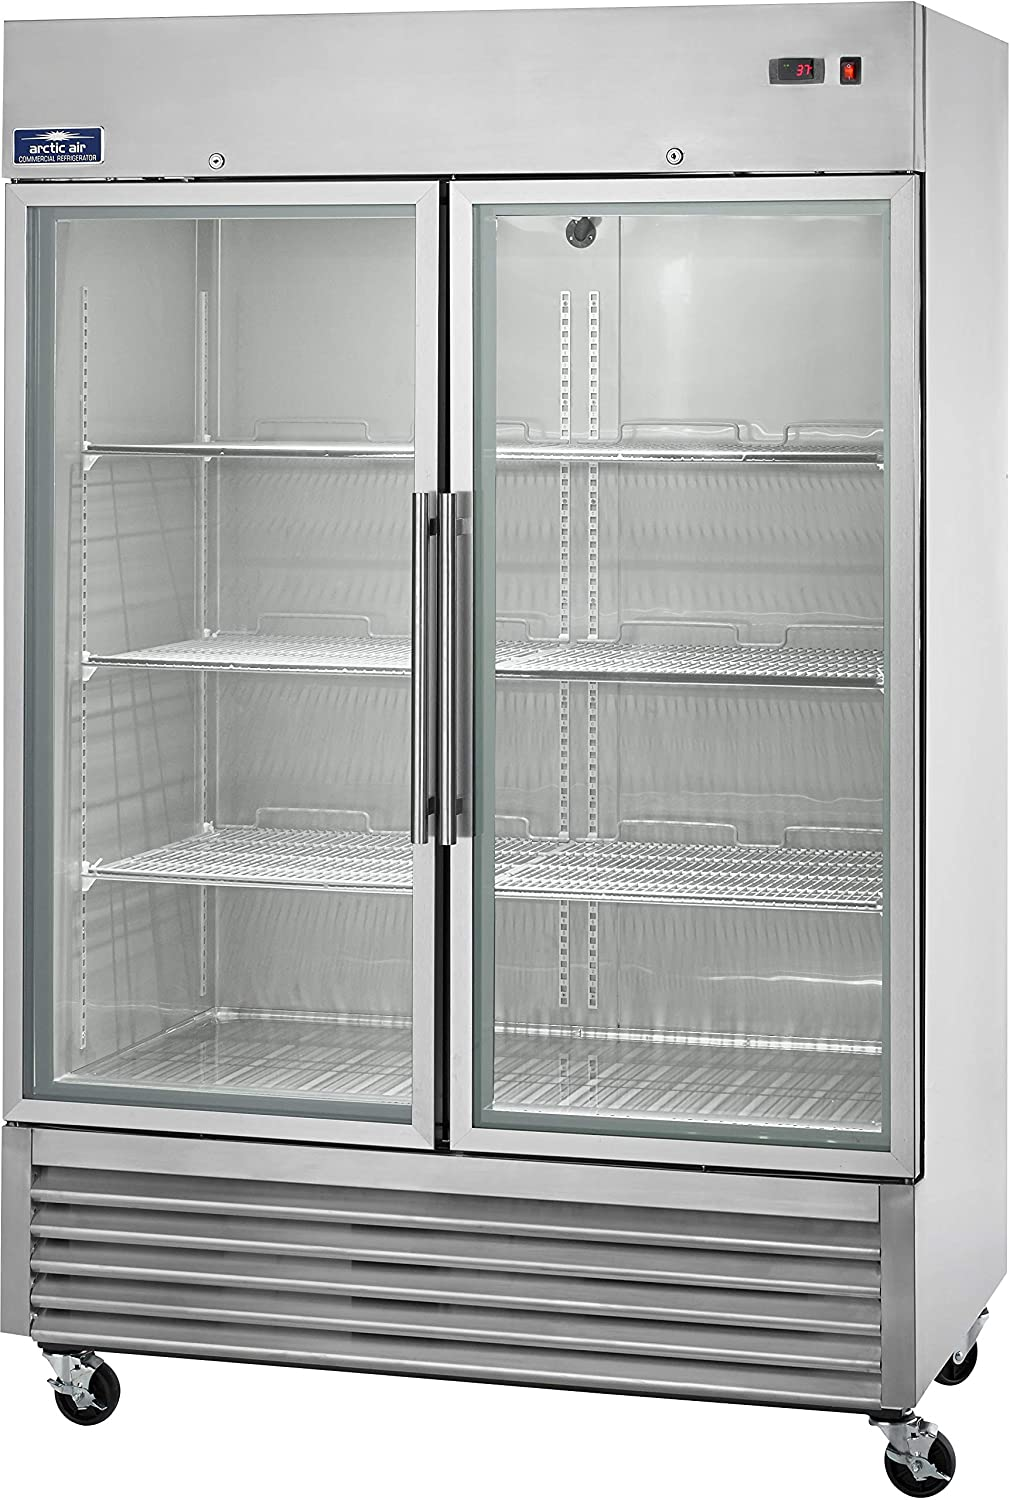 Arctic Air AGR49 Two Door Glass Reach-In Refrigerators, 2 doors 6 shelves, 33DF to 41DF, 49 cu. ft, Stainless Steel